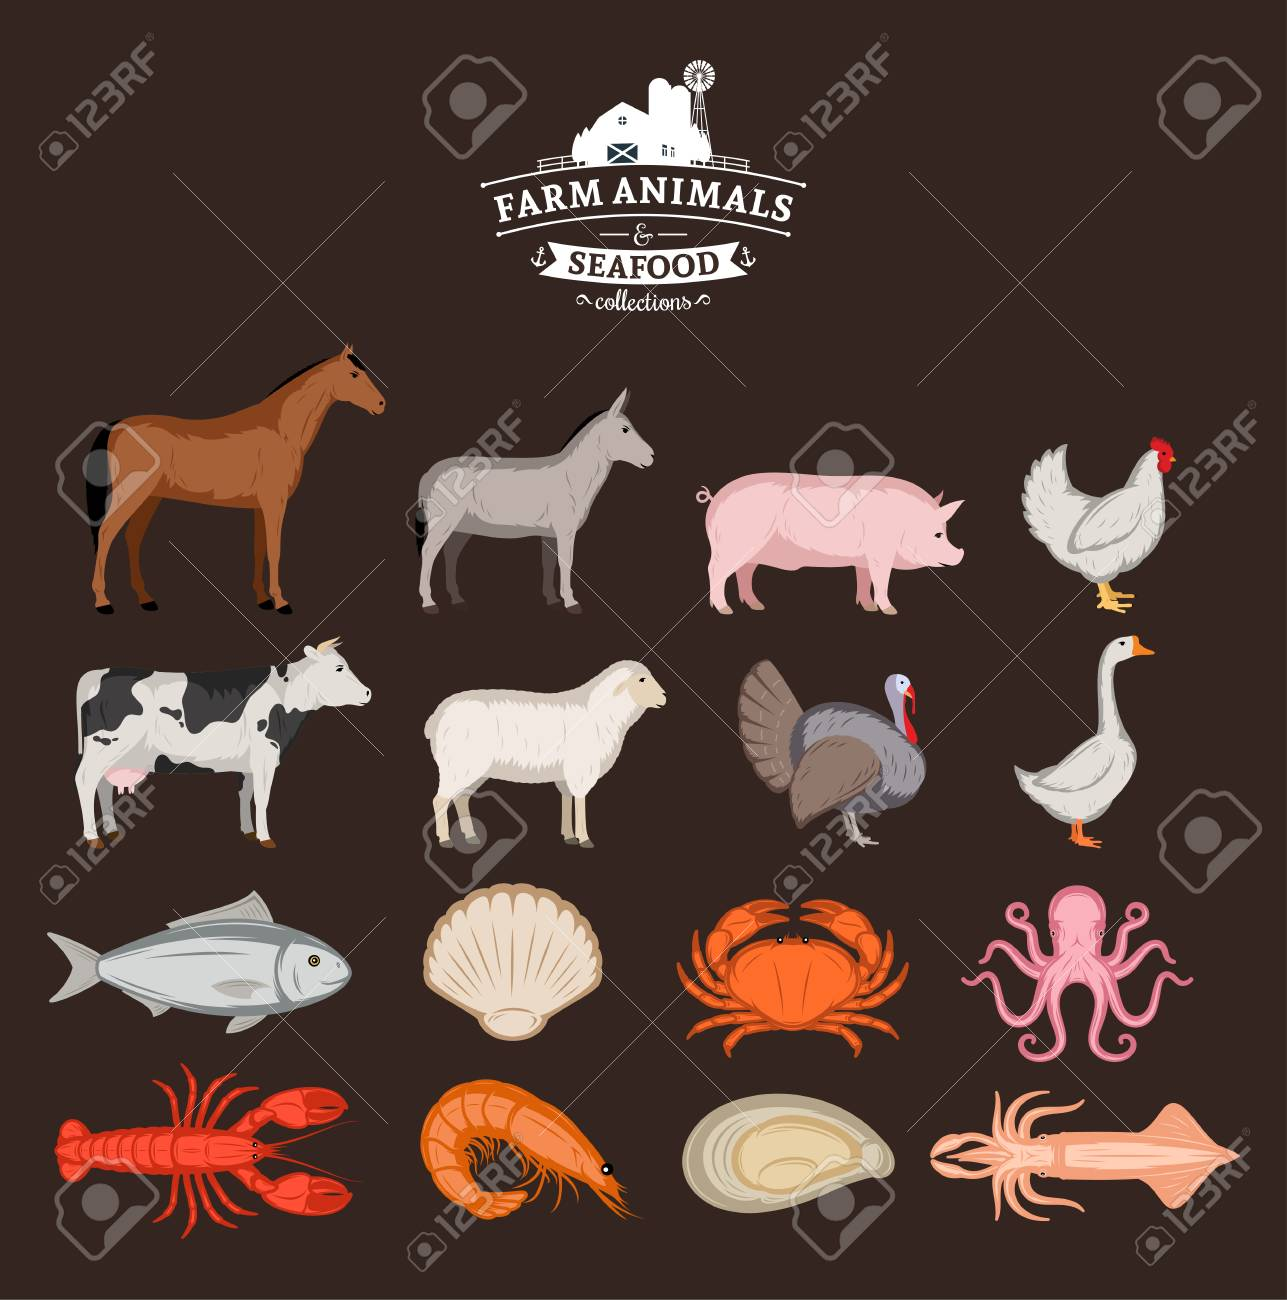 illustration of farm animals poster with livestock poultry and